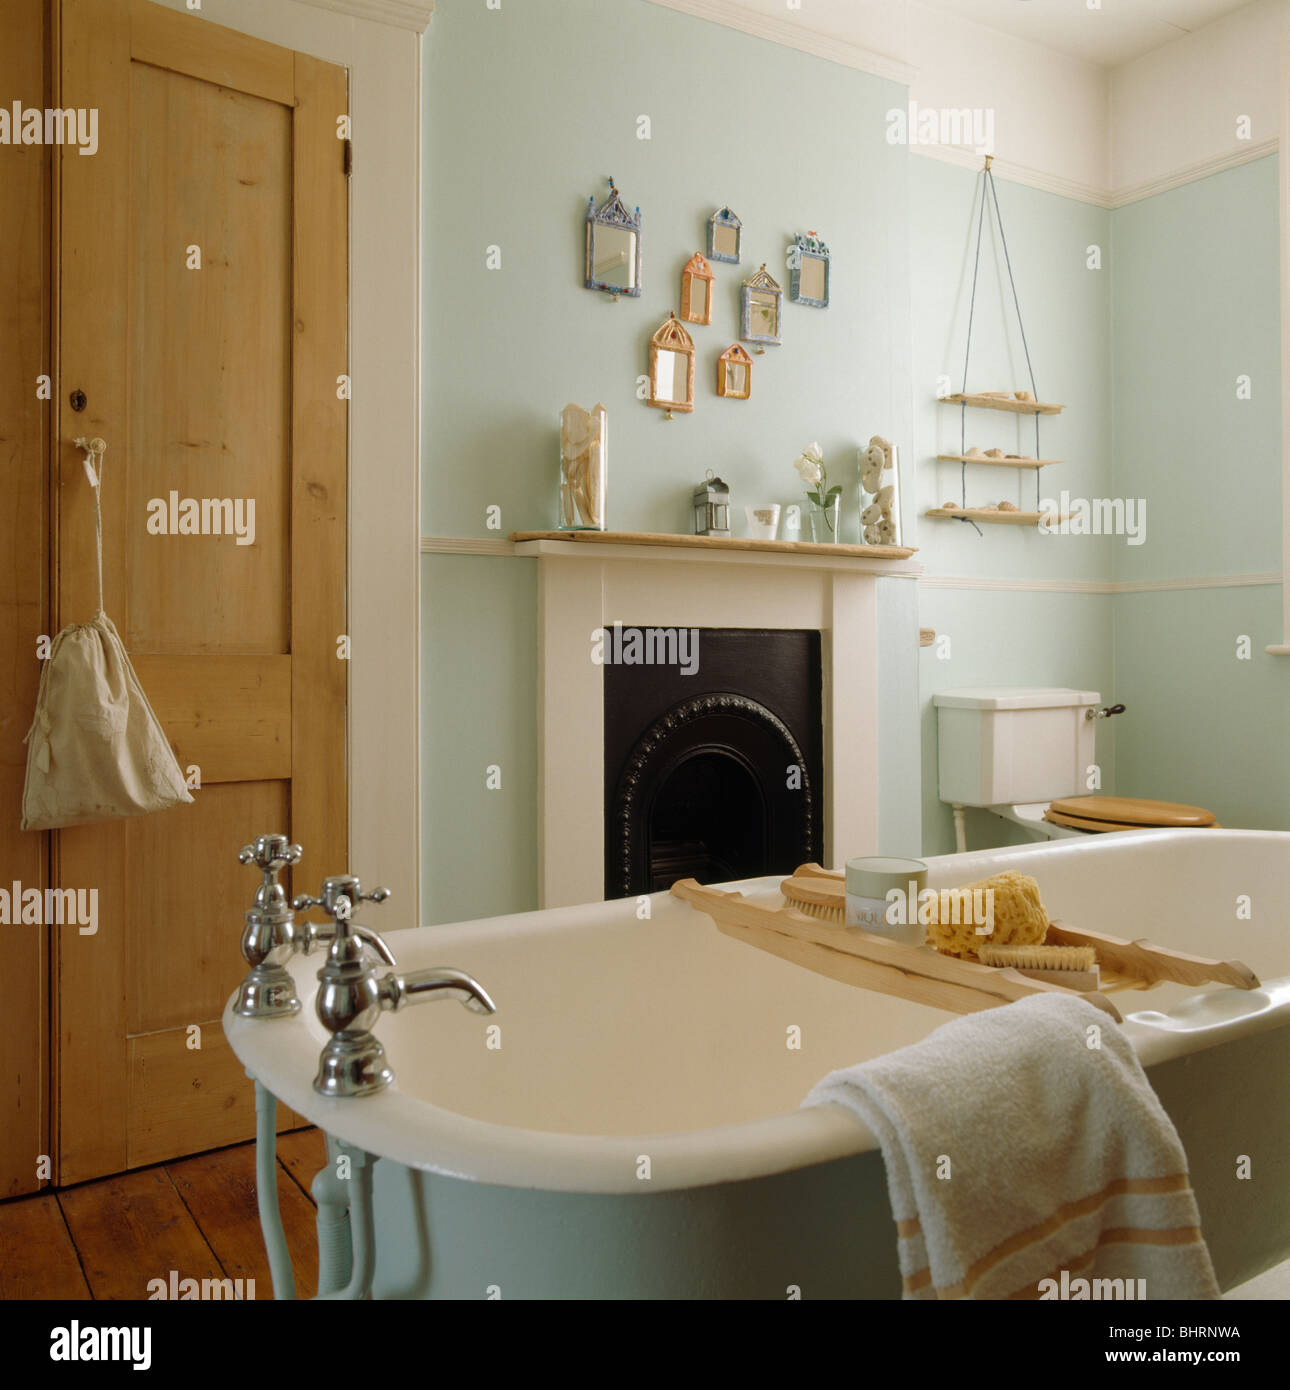 Roll-top bath with wooden bath-rack in pale green bathroom with pine ...